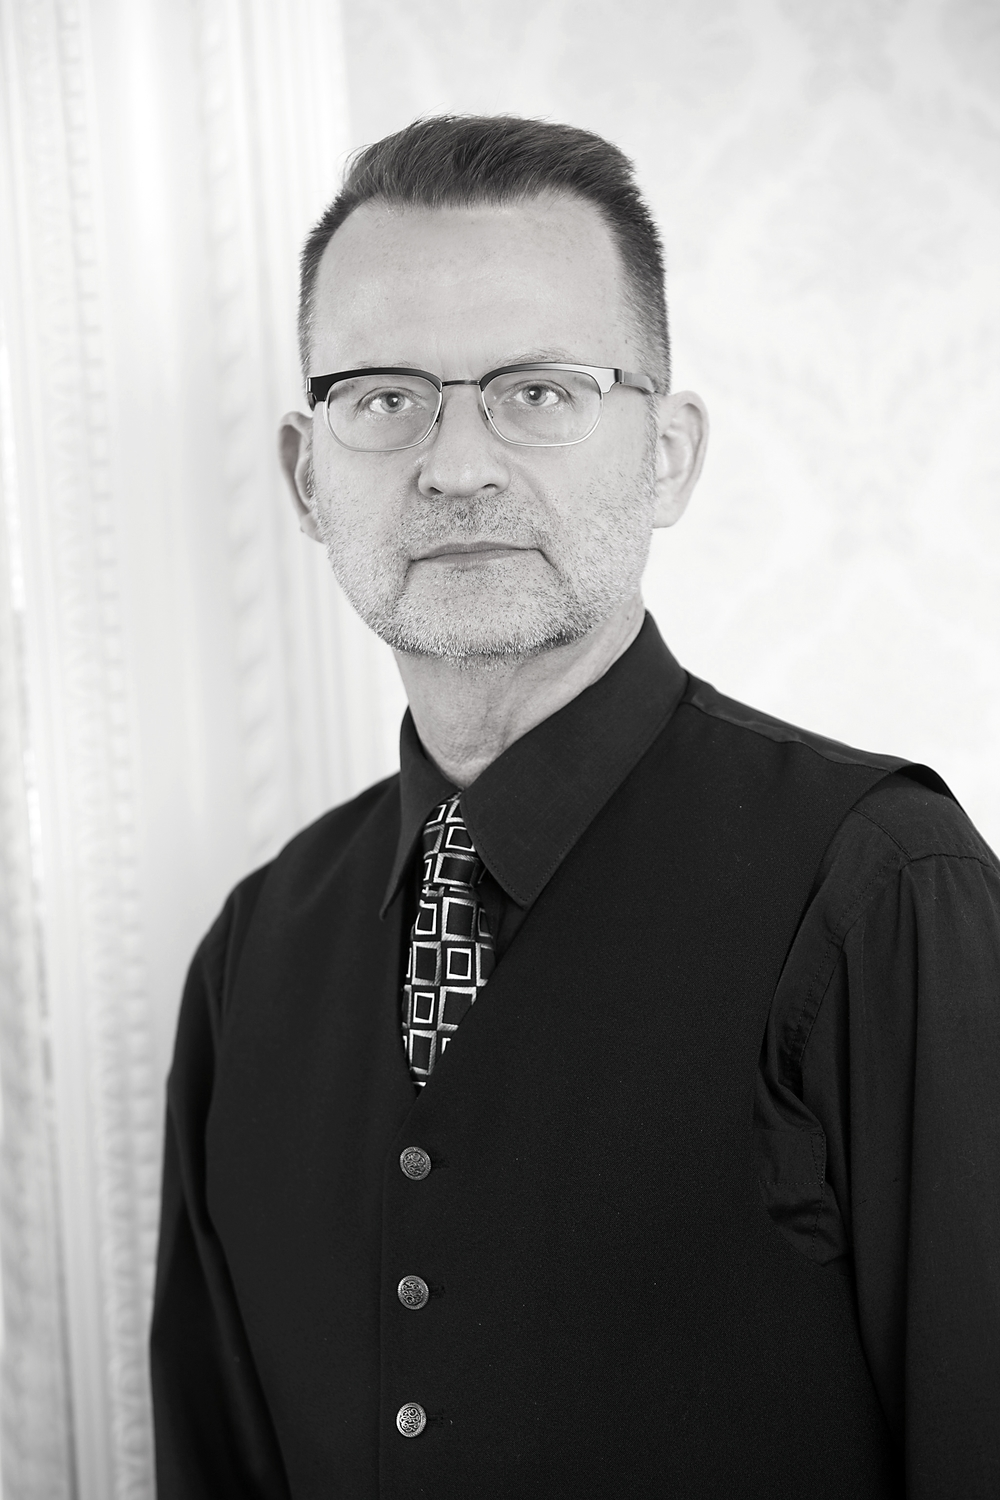 Mark, colour Mark has over 25 years of professional experience as a colourist, texturizing specialist, and perm specialist and he attributes his success to being meticulous and particular with his craft. he has worked as a colour educator for wella's professional brand, and is a master in creating red and cooper tones with the aveda colour line. mark has been a member of the storm team for over four years, and he loves to create the perfect look for each and every person who sits in his chair.